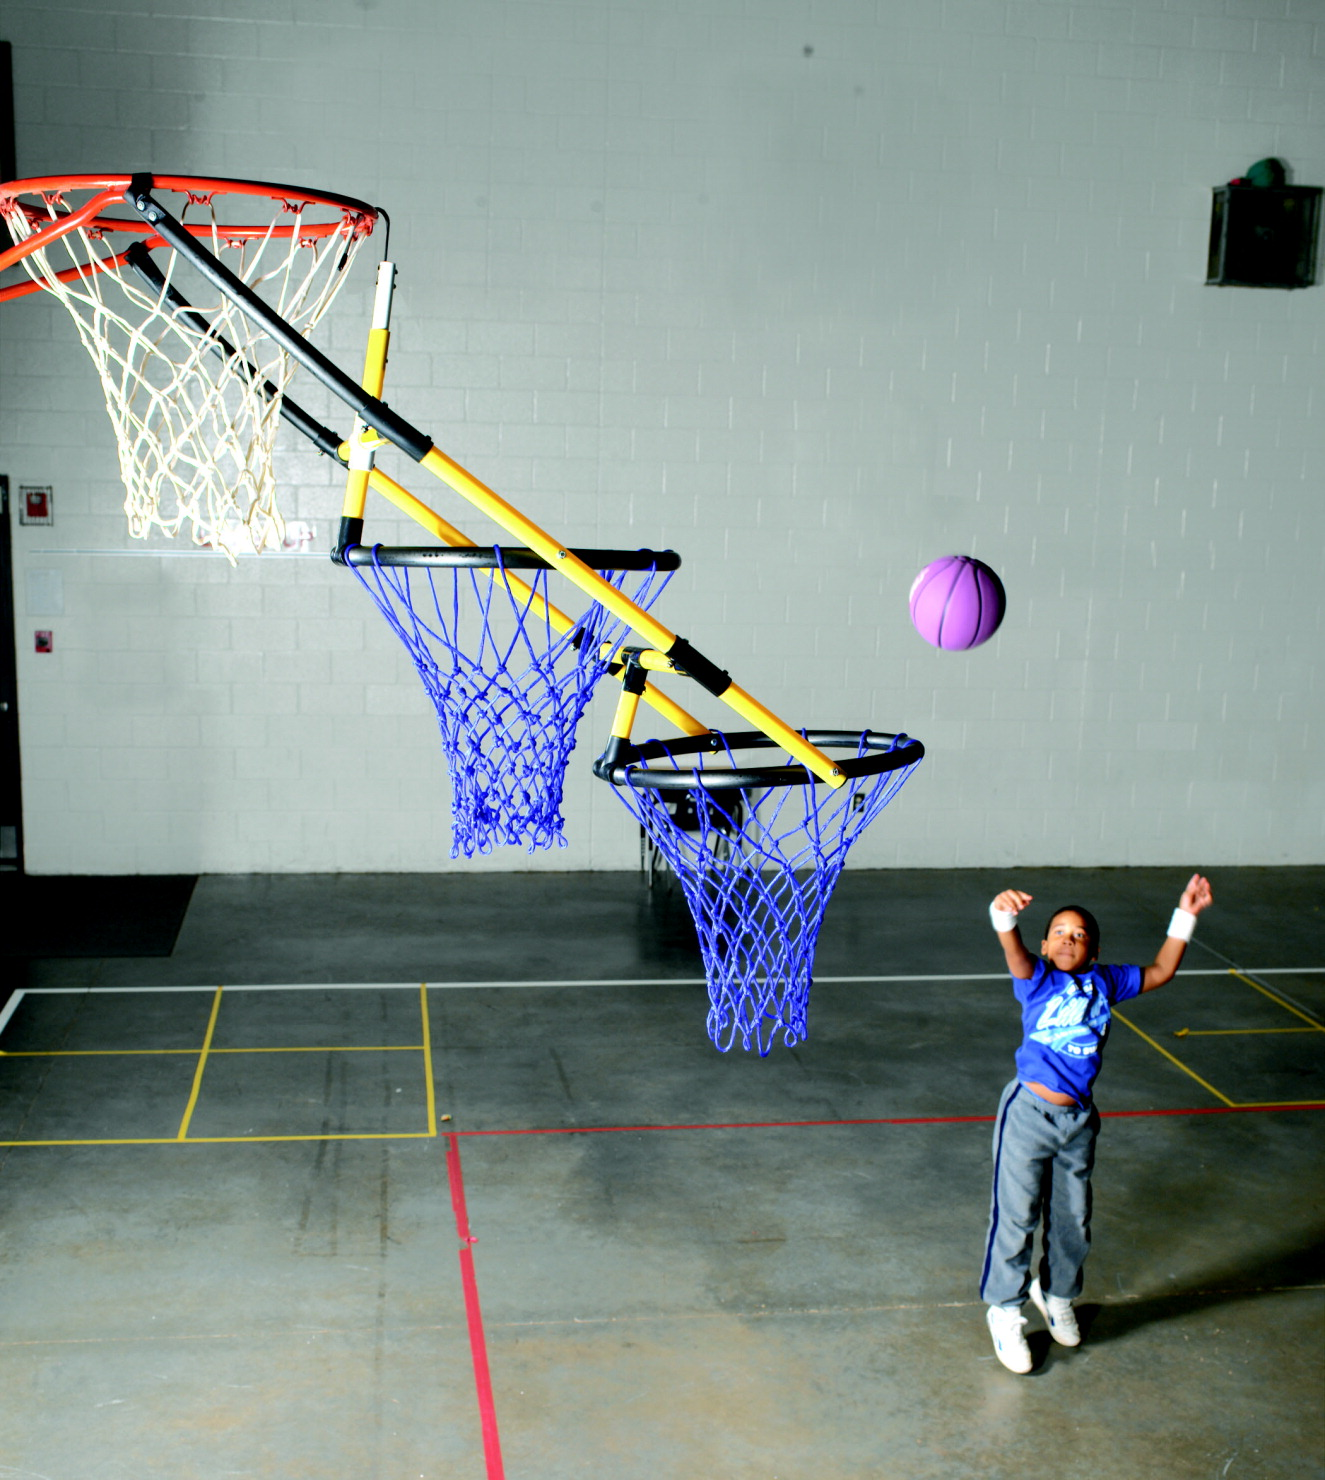 Sportime Tierdrop Two-Hoop Basketball Goal Nets, 18 Inches